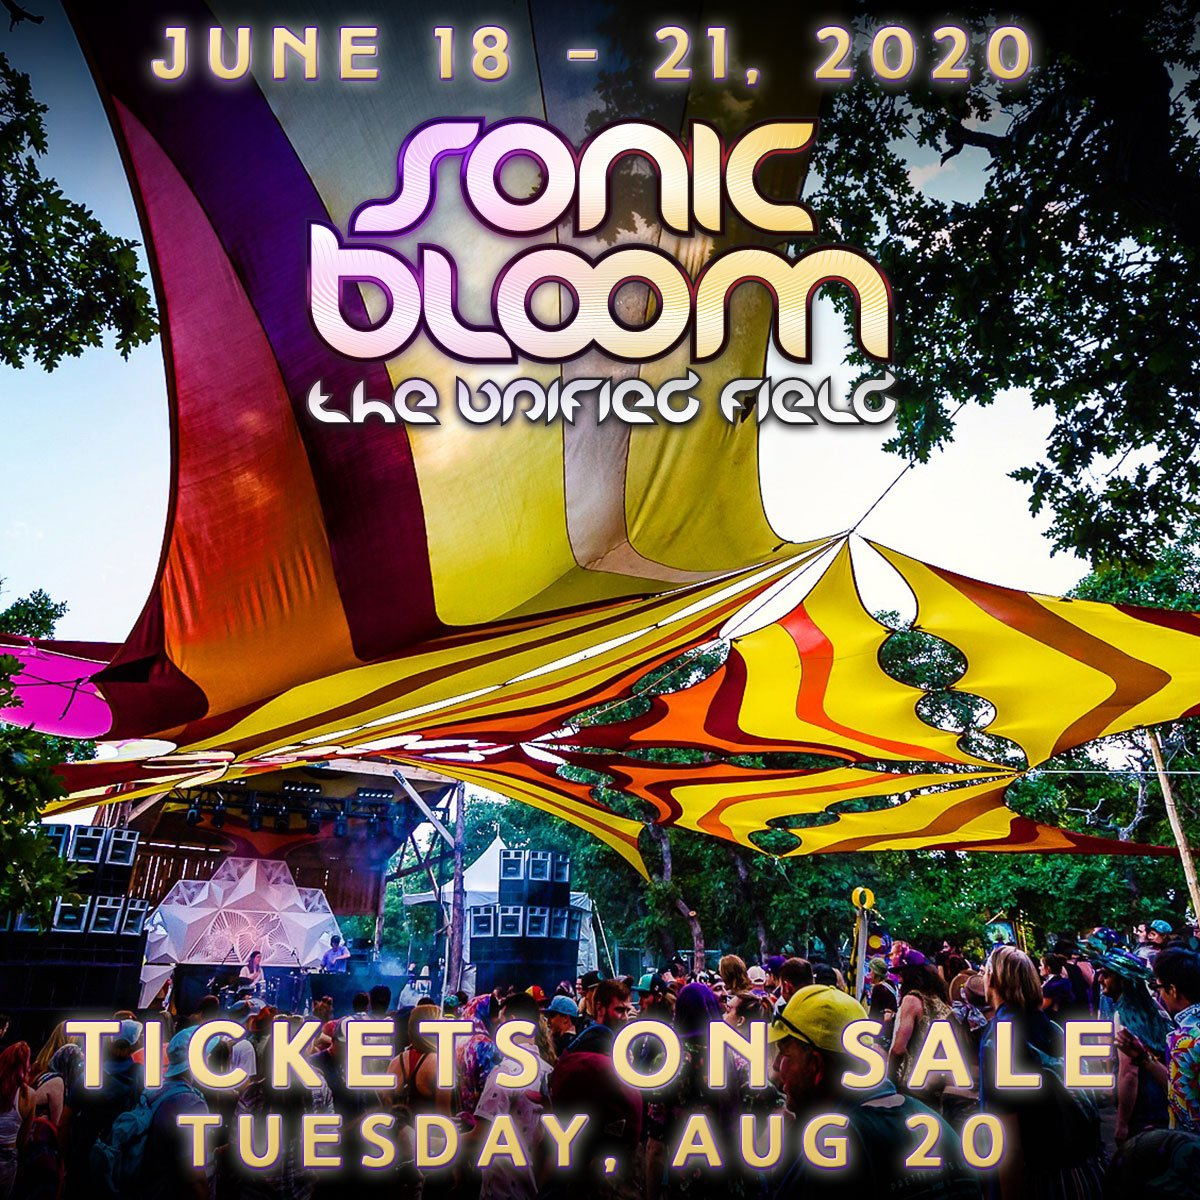 sonic_bloom_ - Twitter Top Tweets Search Results | Twitock